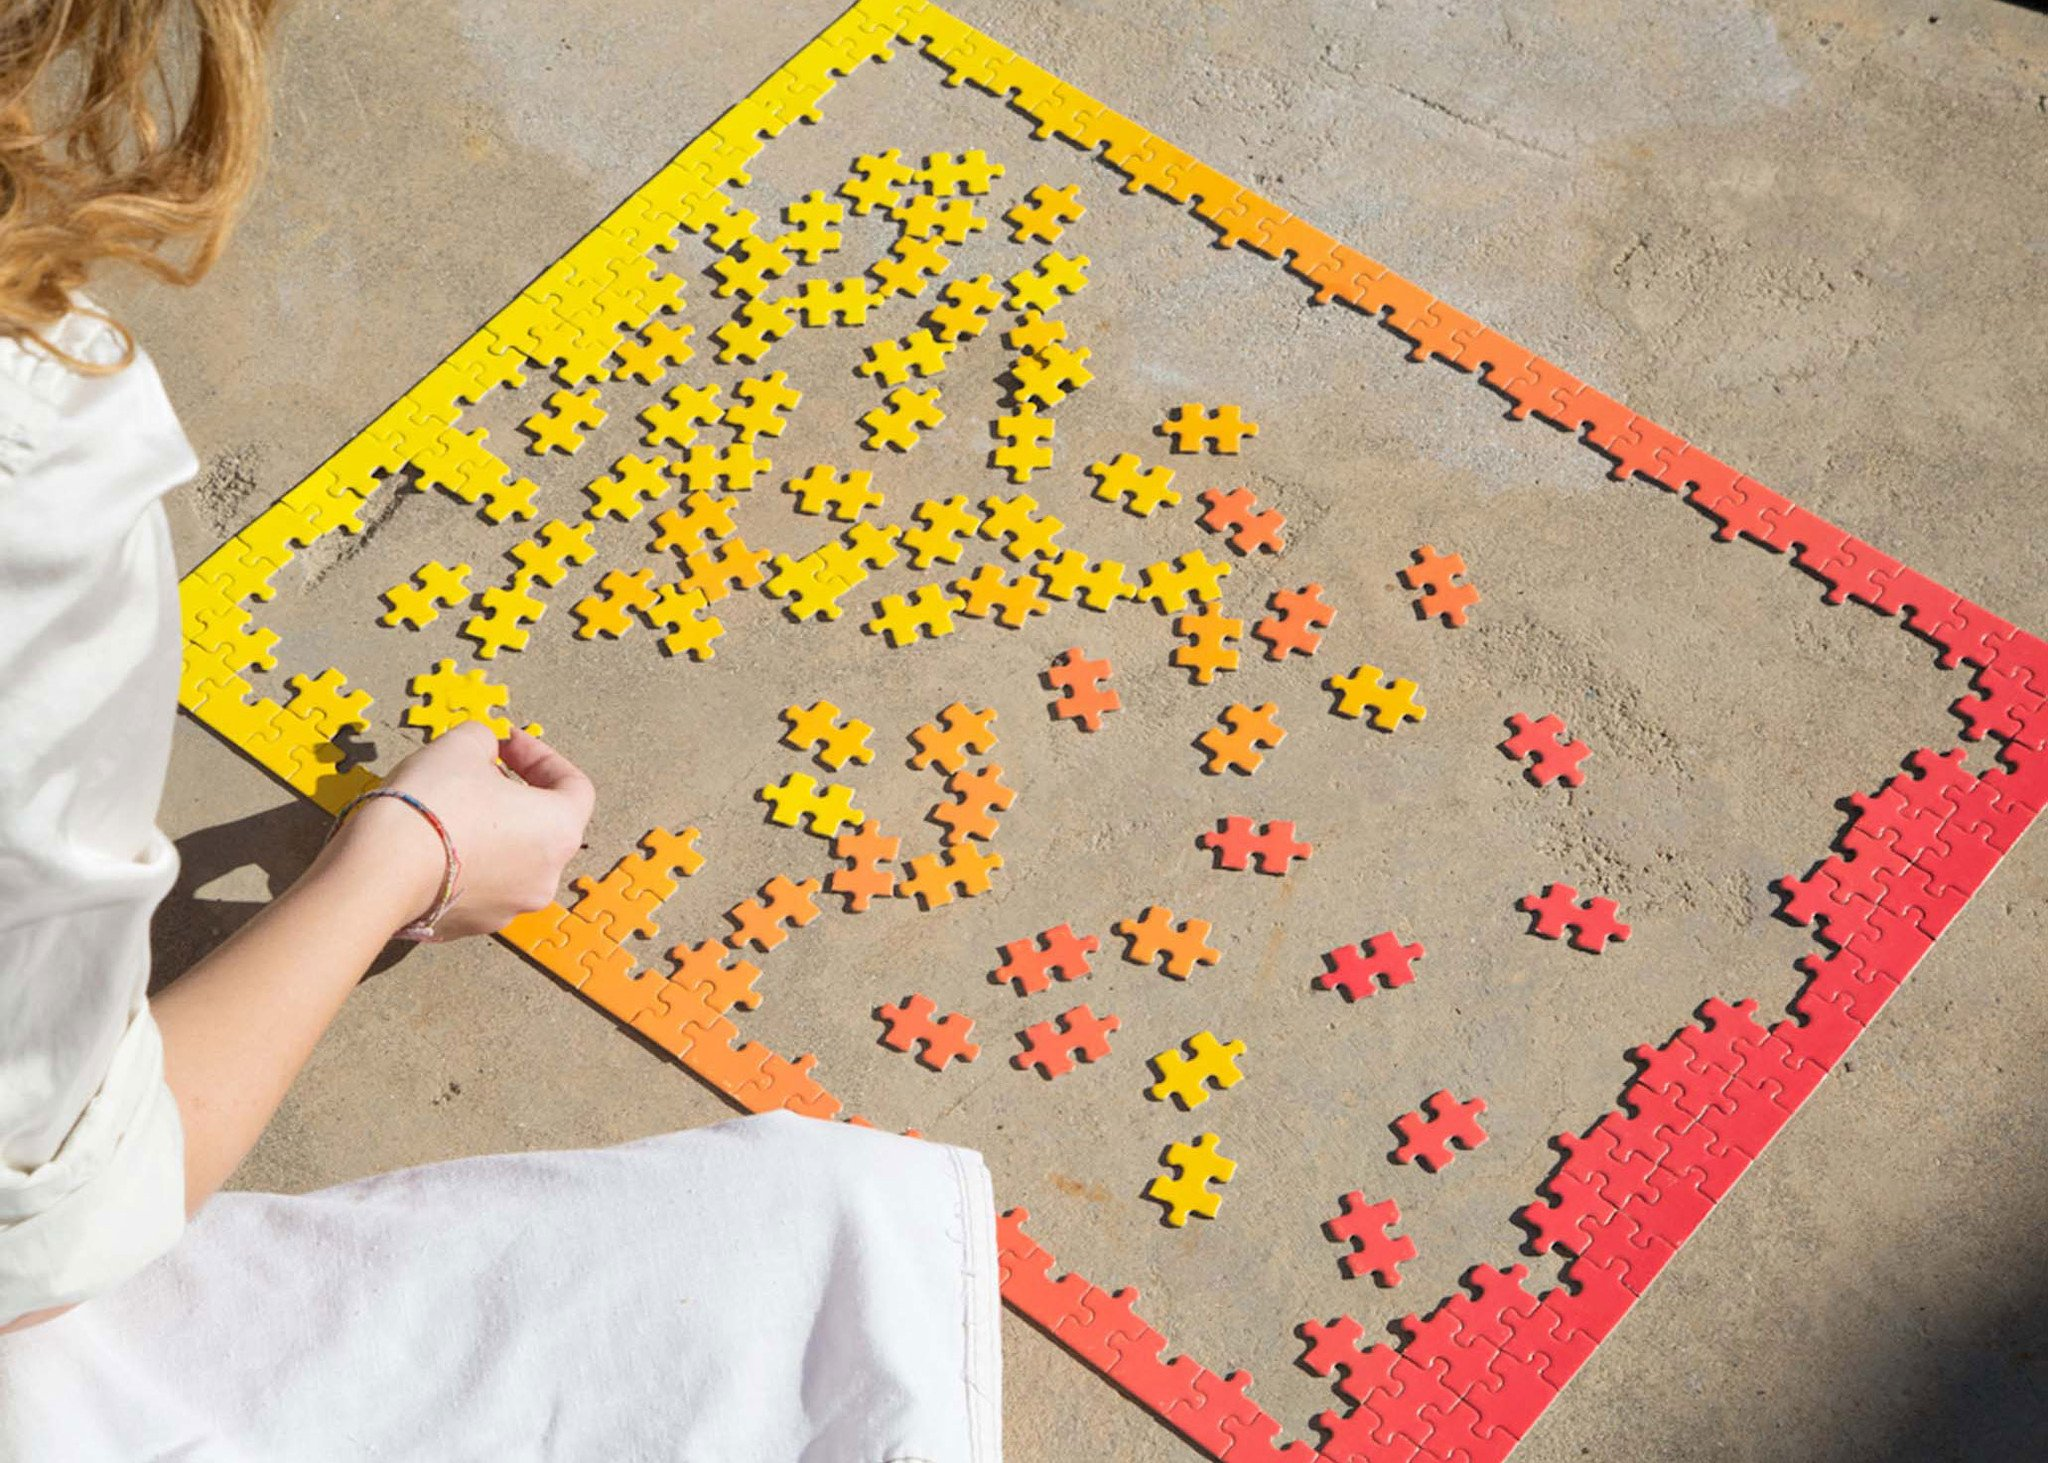 Cool puzzles for adults who like a challenge